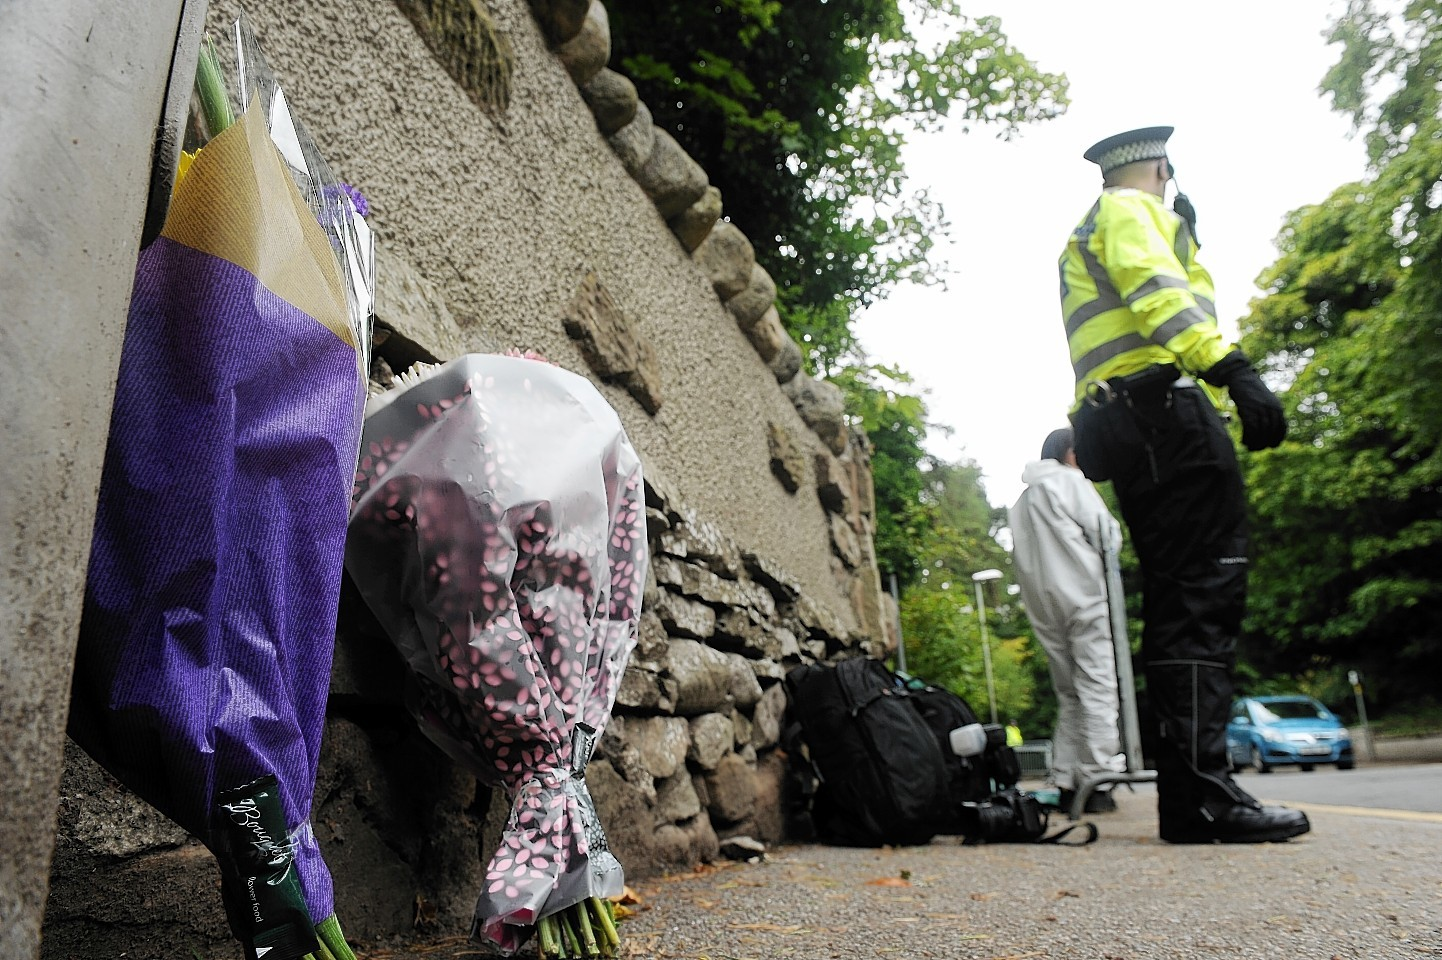 Flowers laid near the area where Charlotte Hornby was found dead.